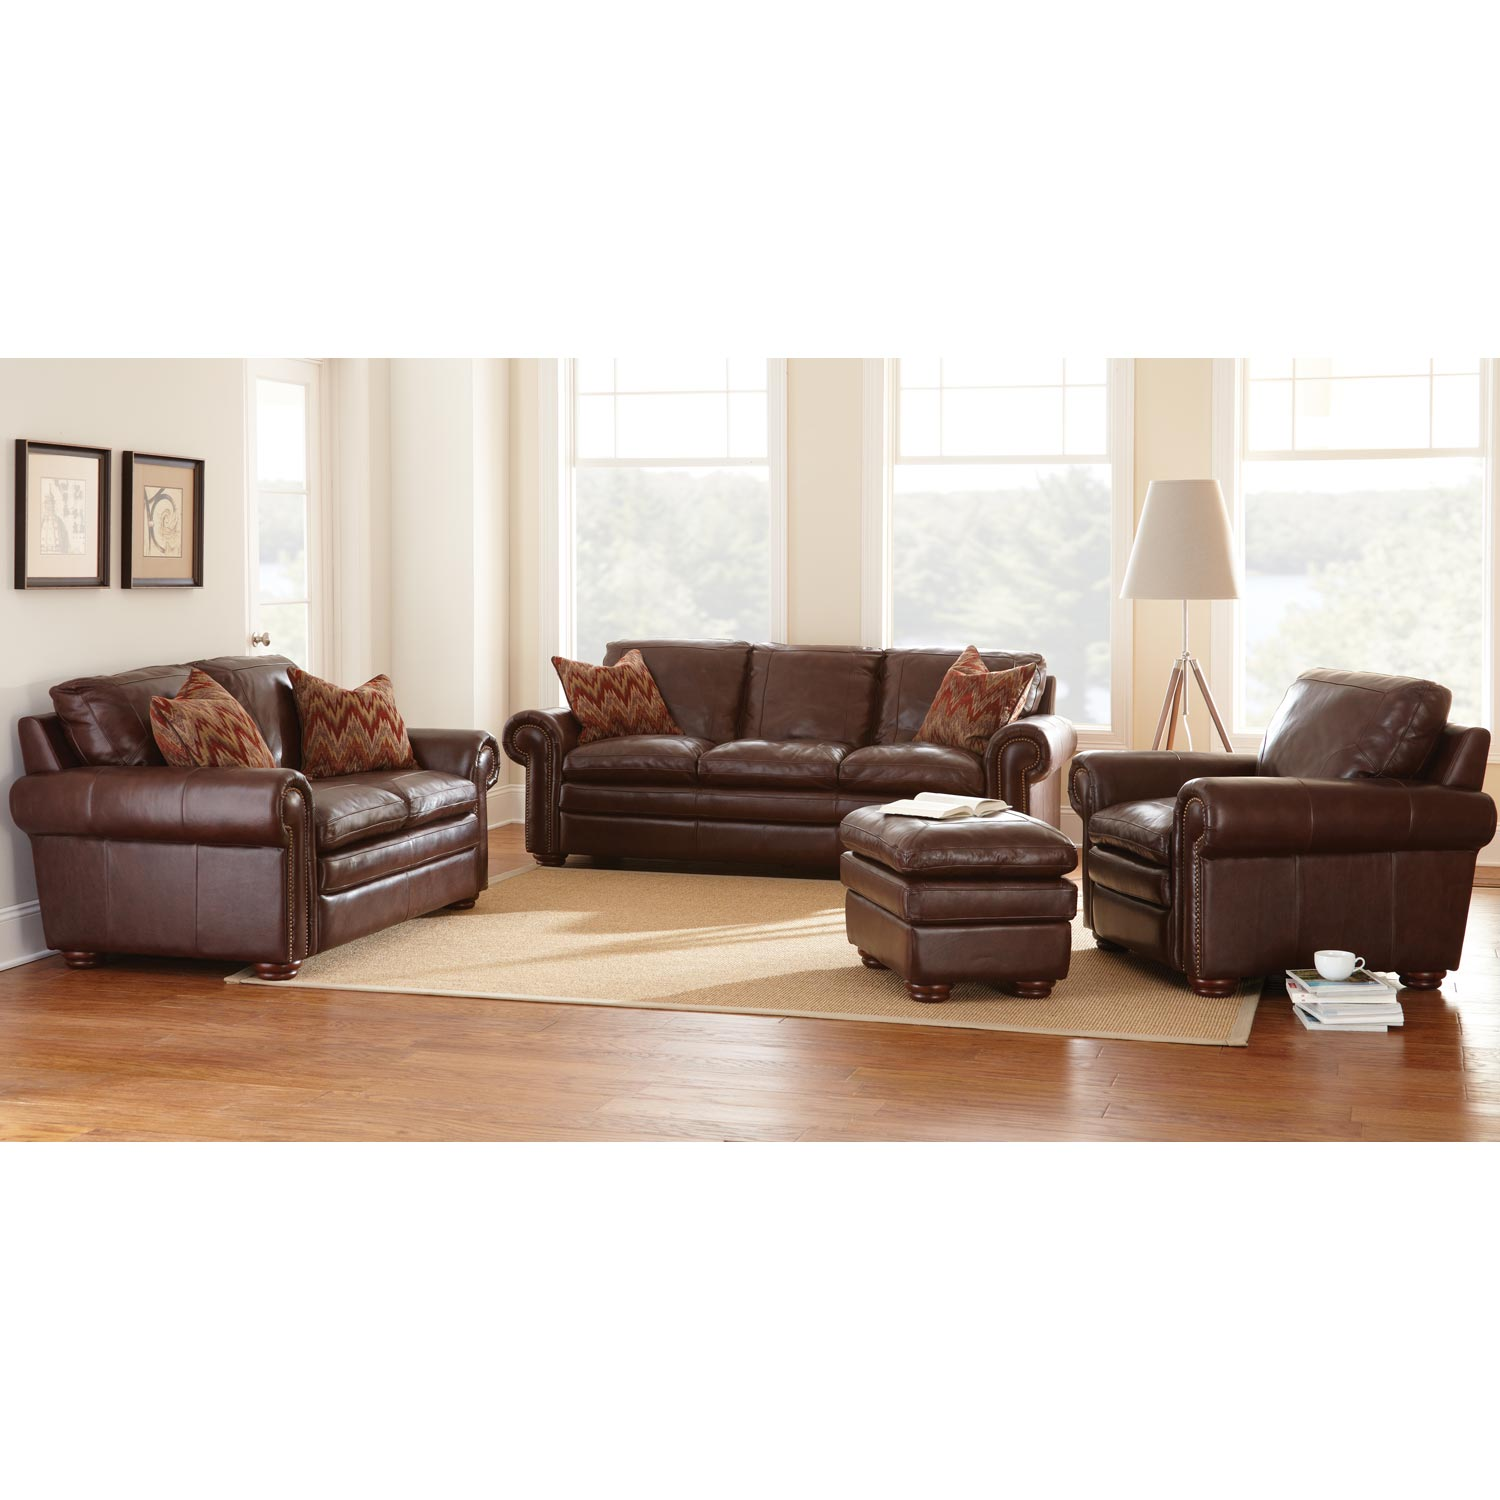 Yosemite Leather Sofa - Wooden Bun Feet, Akron Chestnut - SSC-YO900S